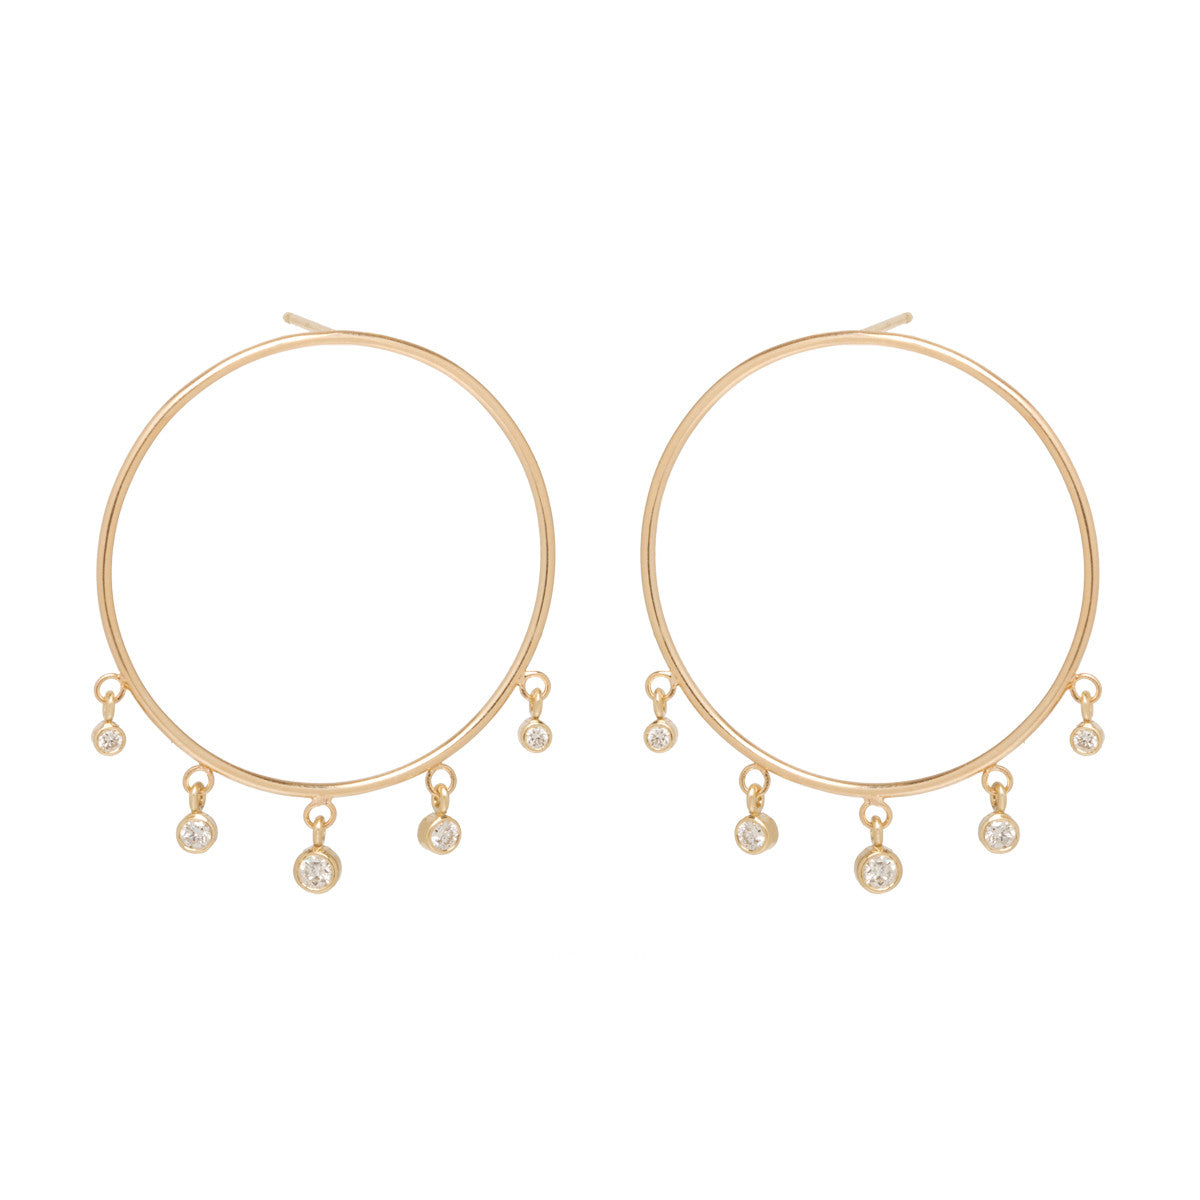 Zoë Chicco 14kt Yellow Gold Large Front Circle Hoop Earrings with Graduated Dangling Diamonds